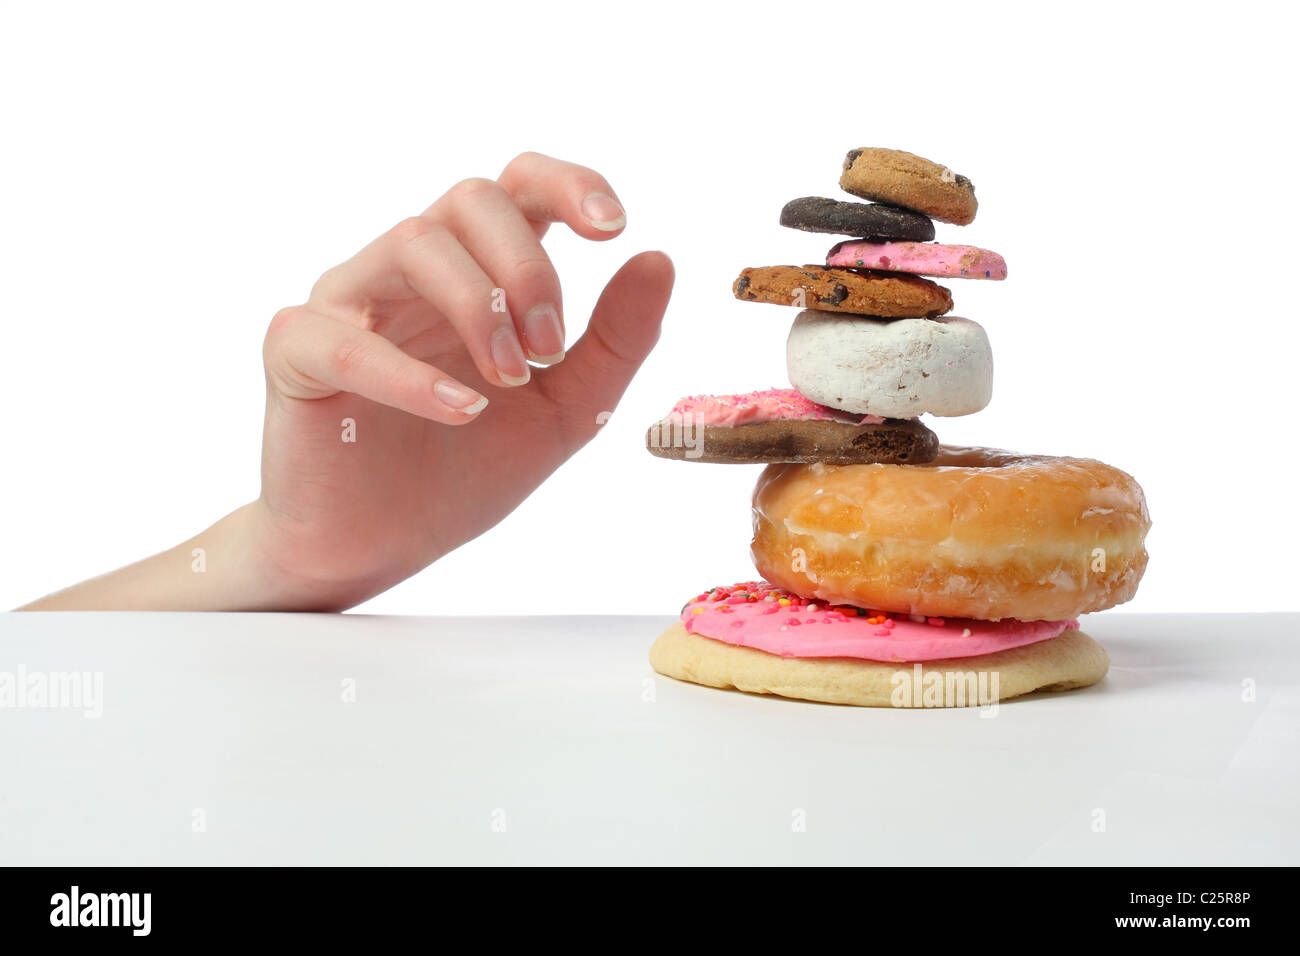 child hand reaching for cookie and pastry stack - Stock Image